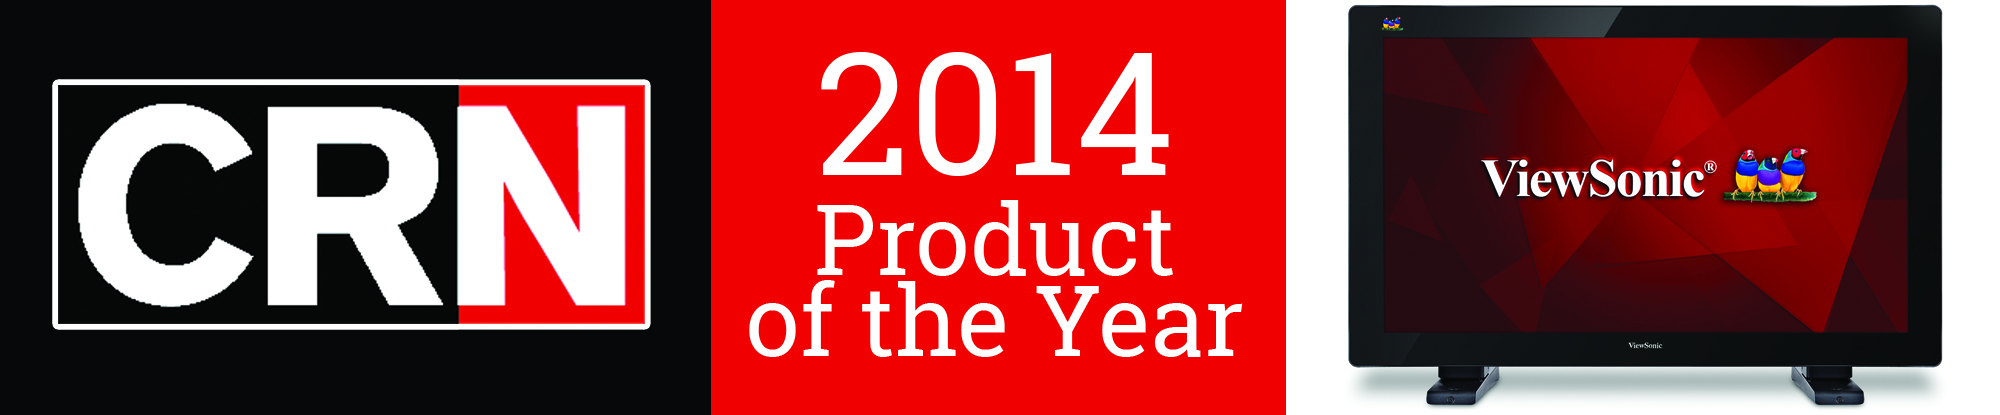 CRN Names ViewSonic's TD3240 Full HD 1080p Projected Capacitive Touch Monitor a 2014 Product of the Year